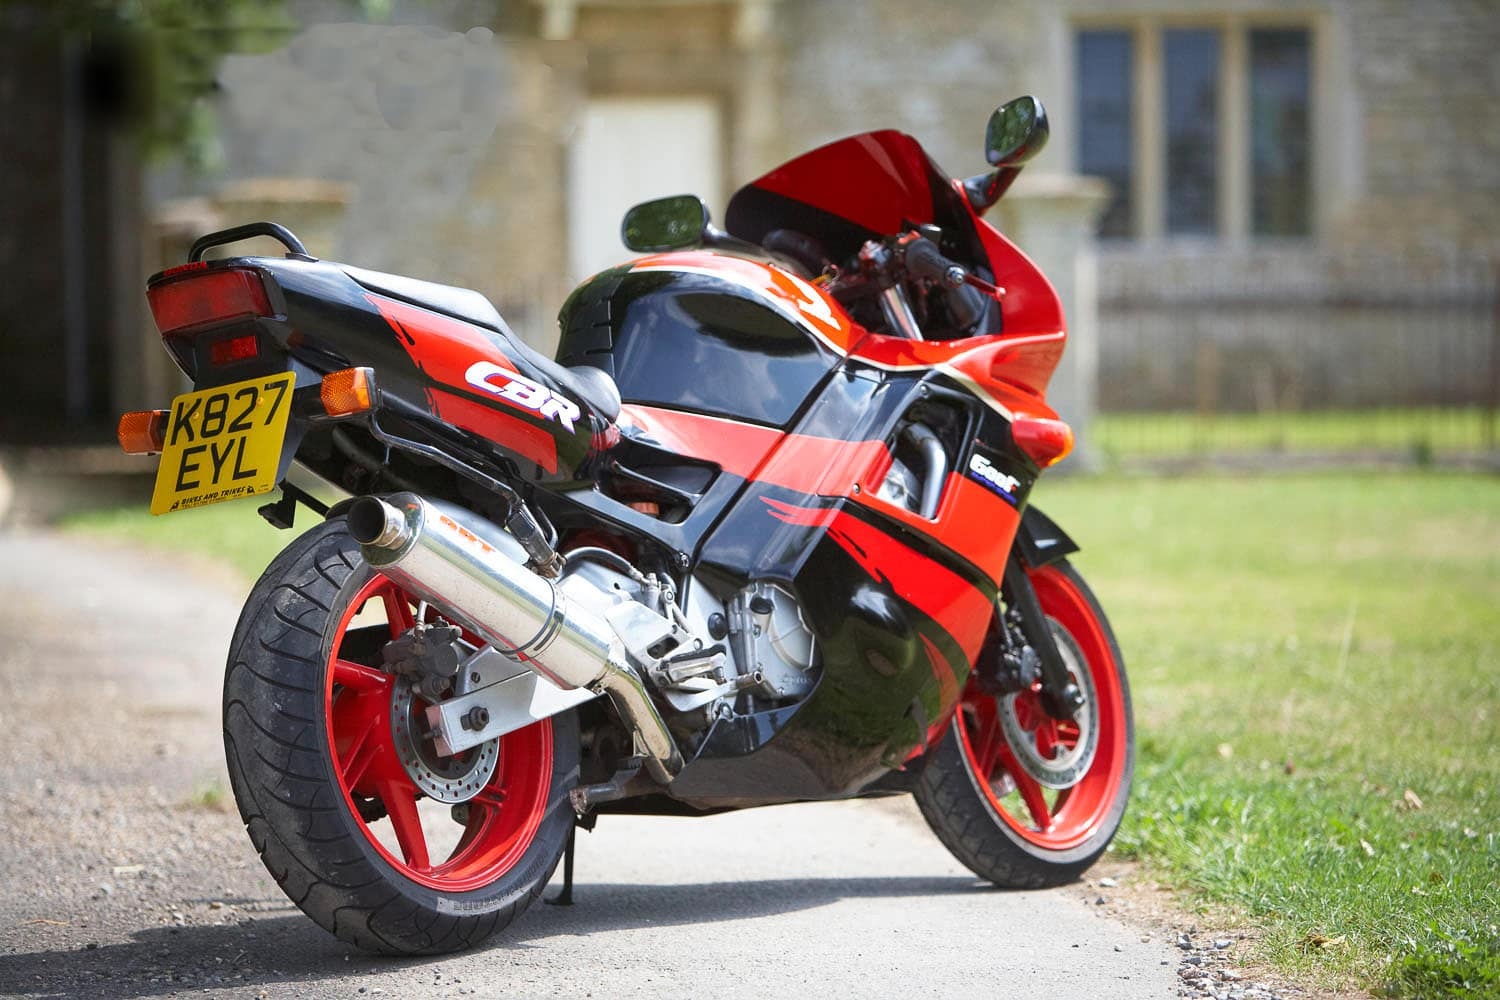 Honda CBR600F Buyers Guide: Fast, Clic and Awesome on